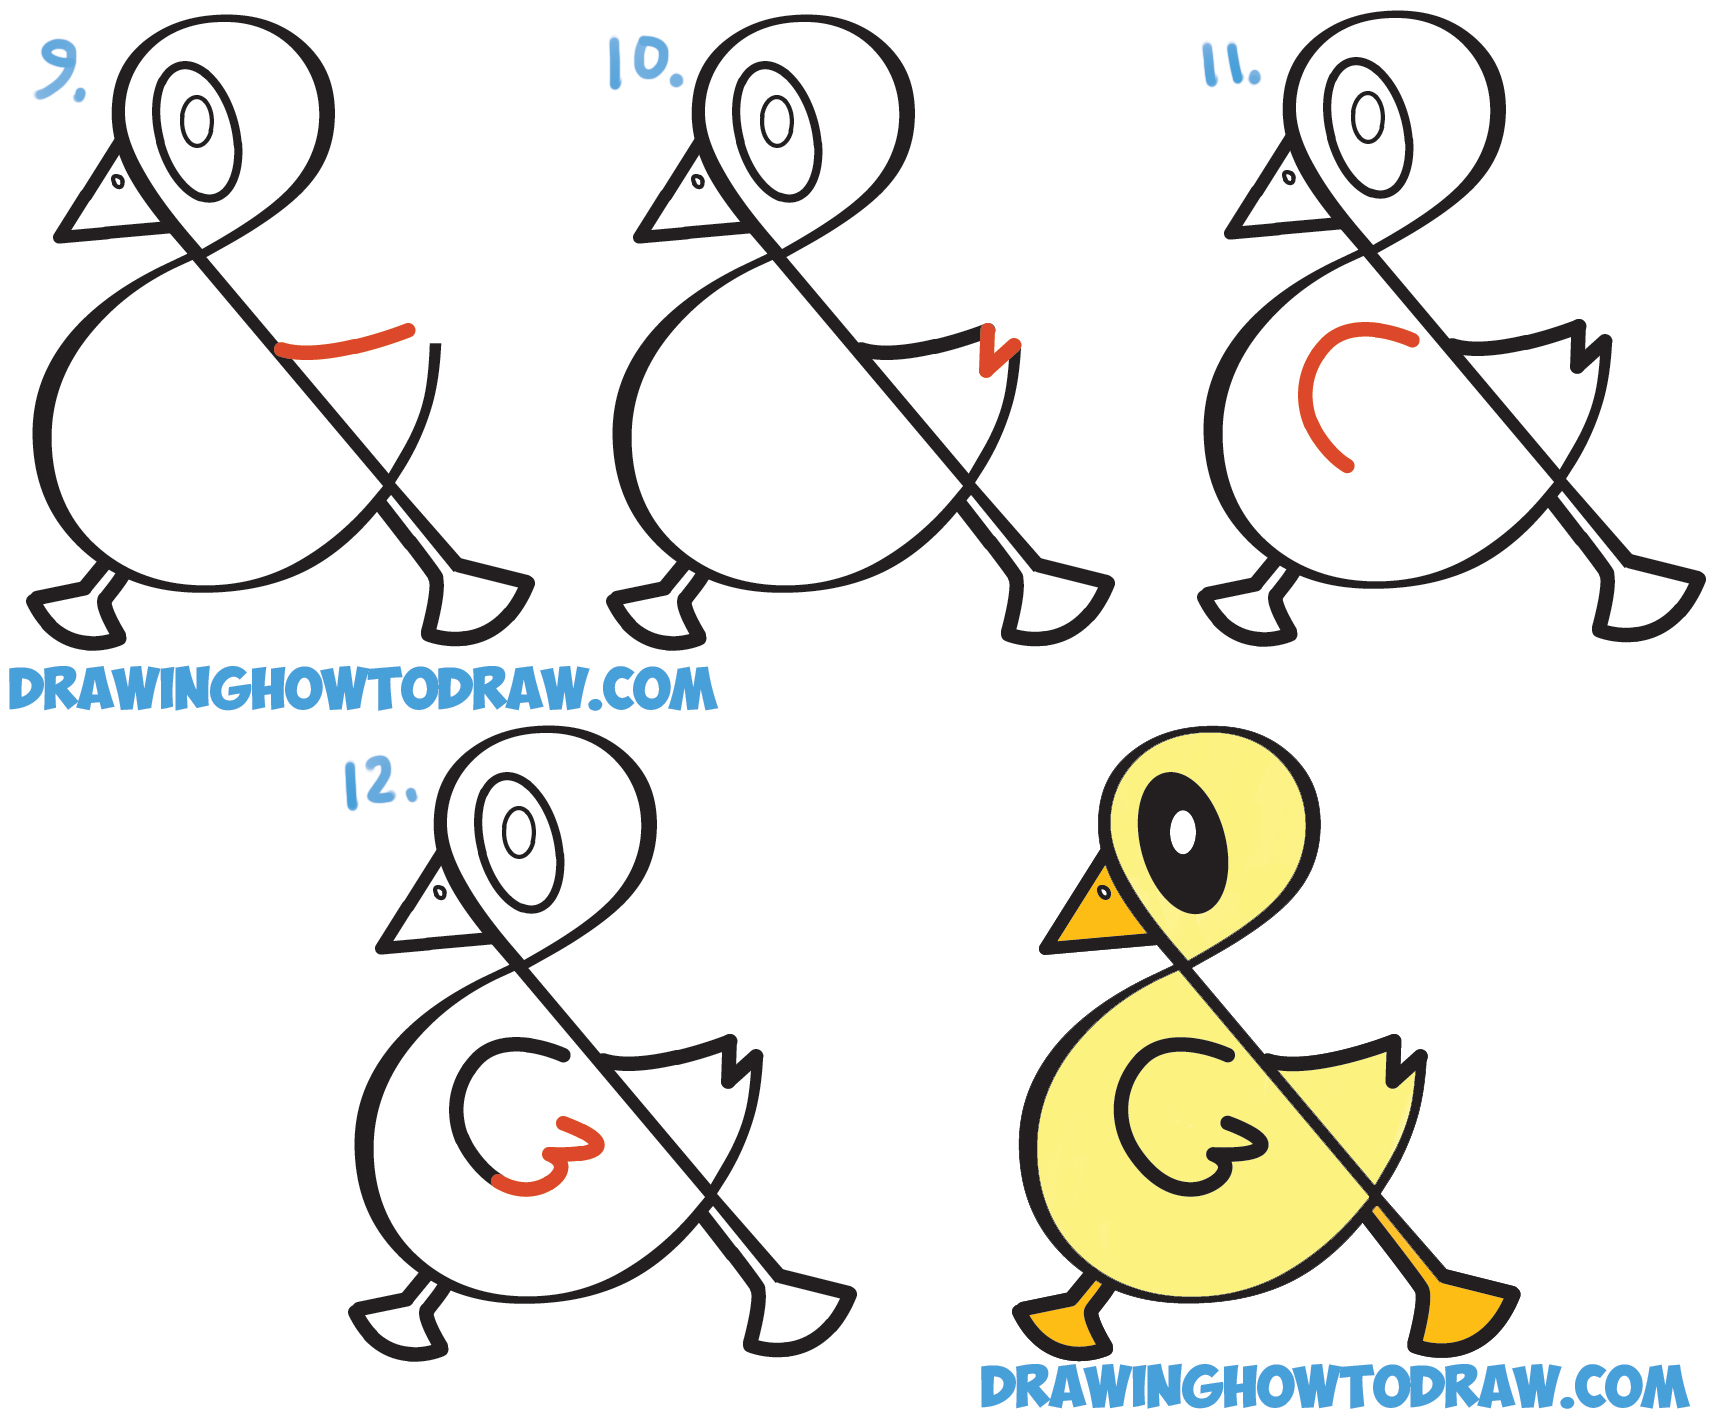 1718x1424 How To Draw A Cute Cartoon Duck From Ampersand Symbol